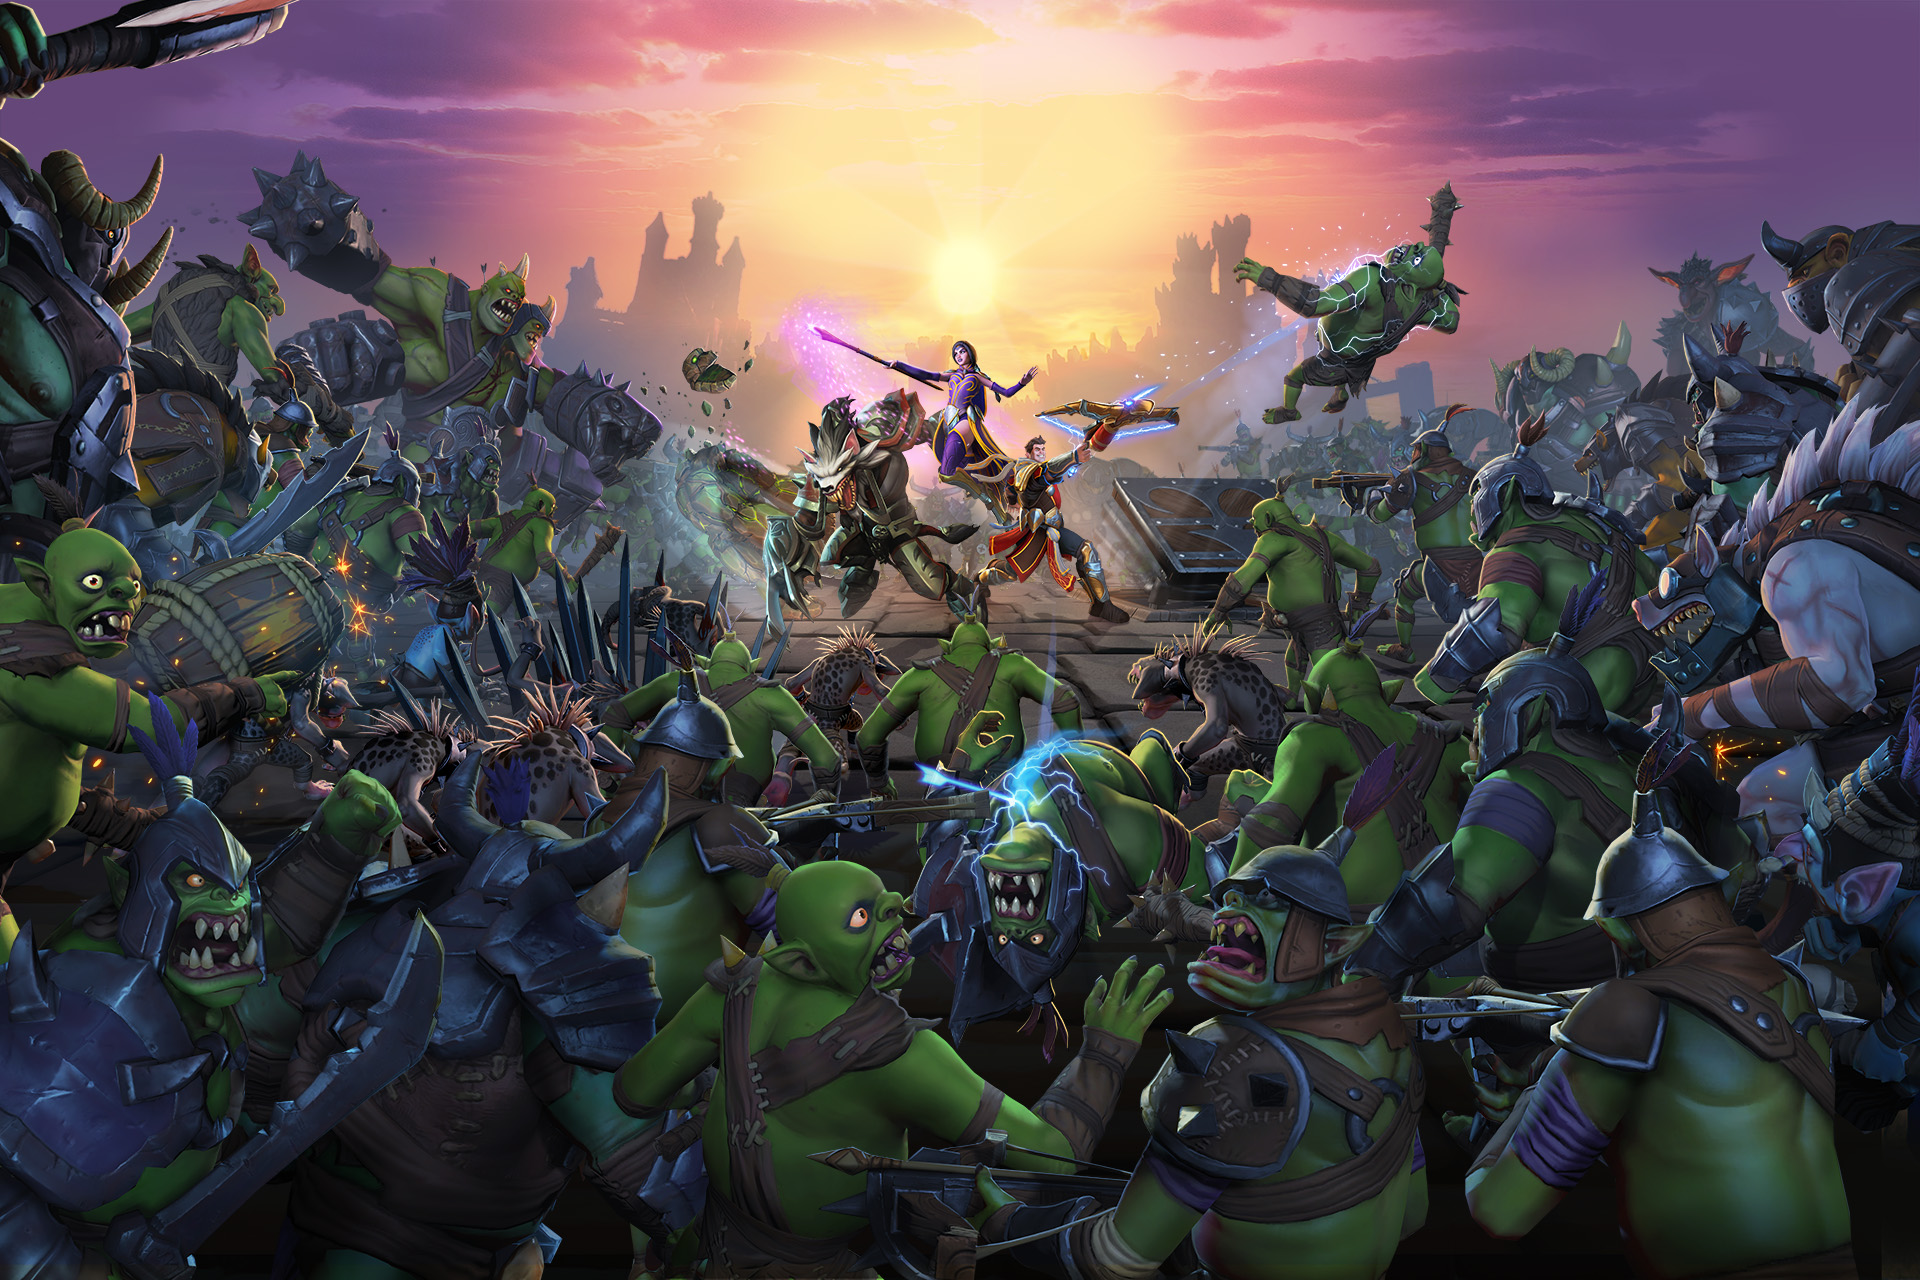 Key art for Orcs Must Die! Unchained by developer Robot Entertainment